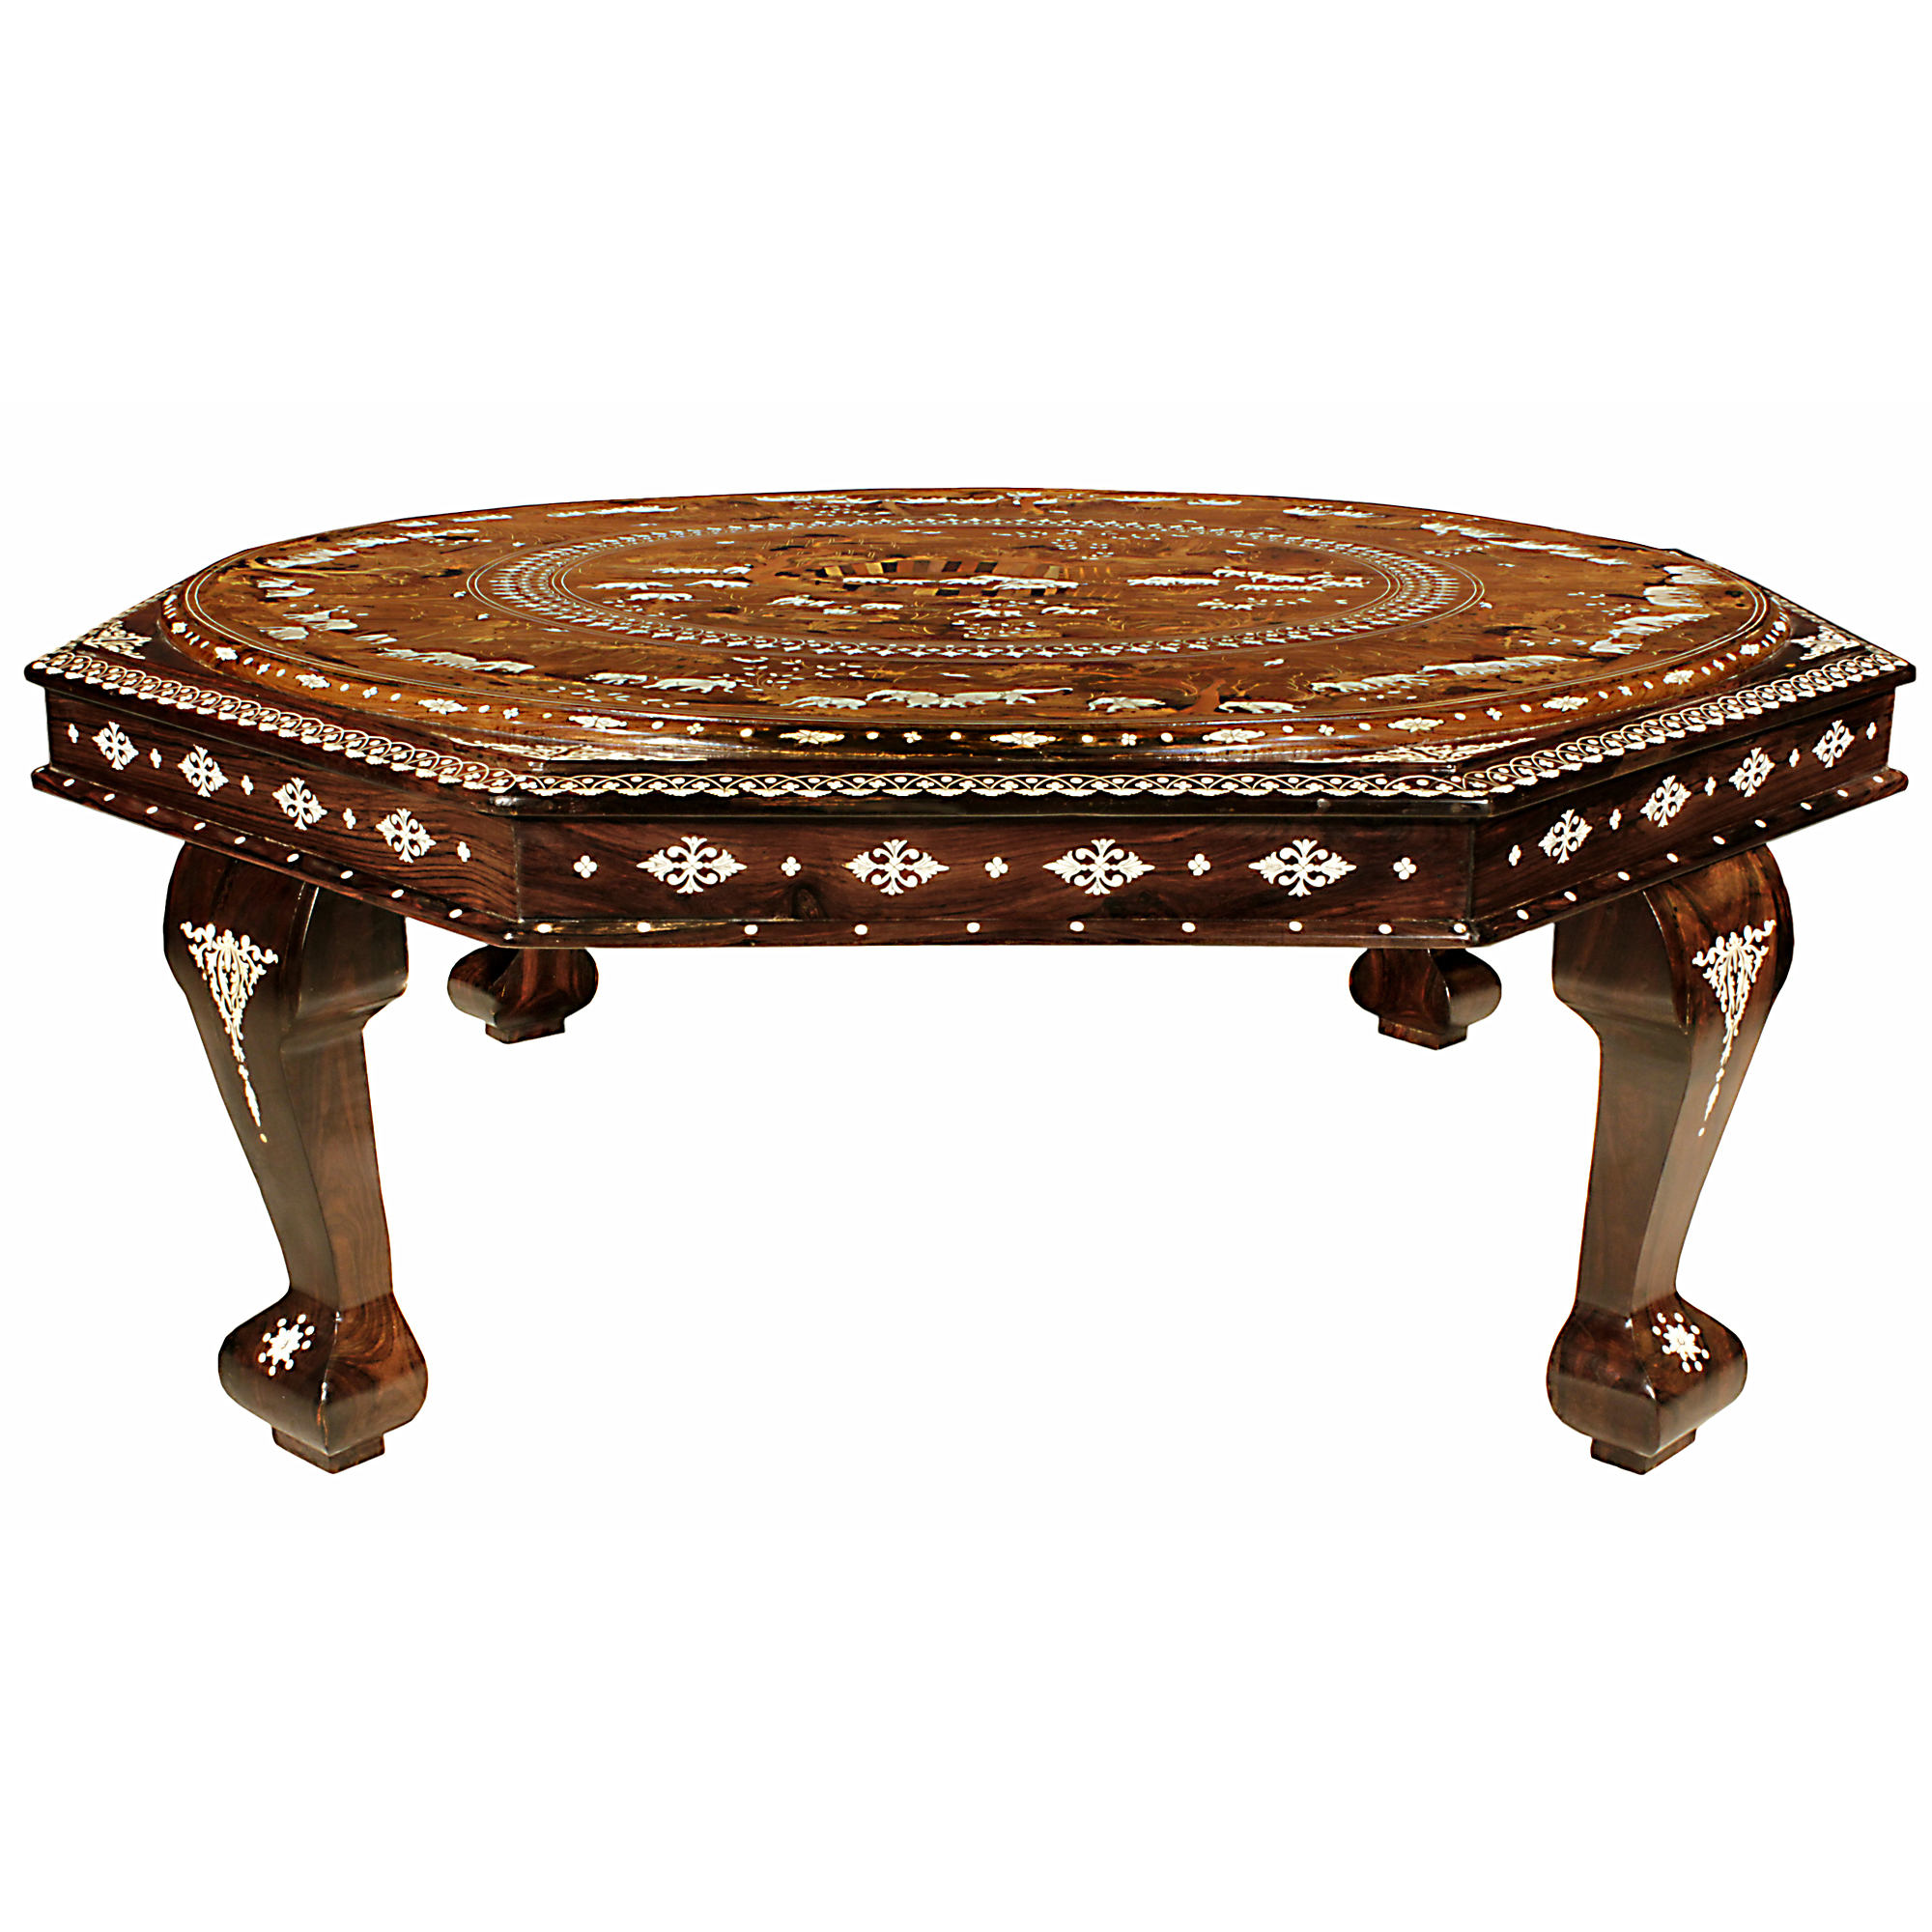 - 19th Century Anglo-Indian Octagon Coffee Table - Cedric DuPont